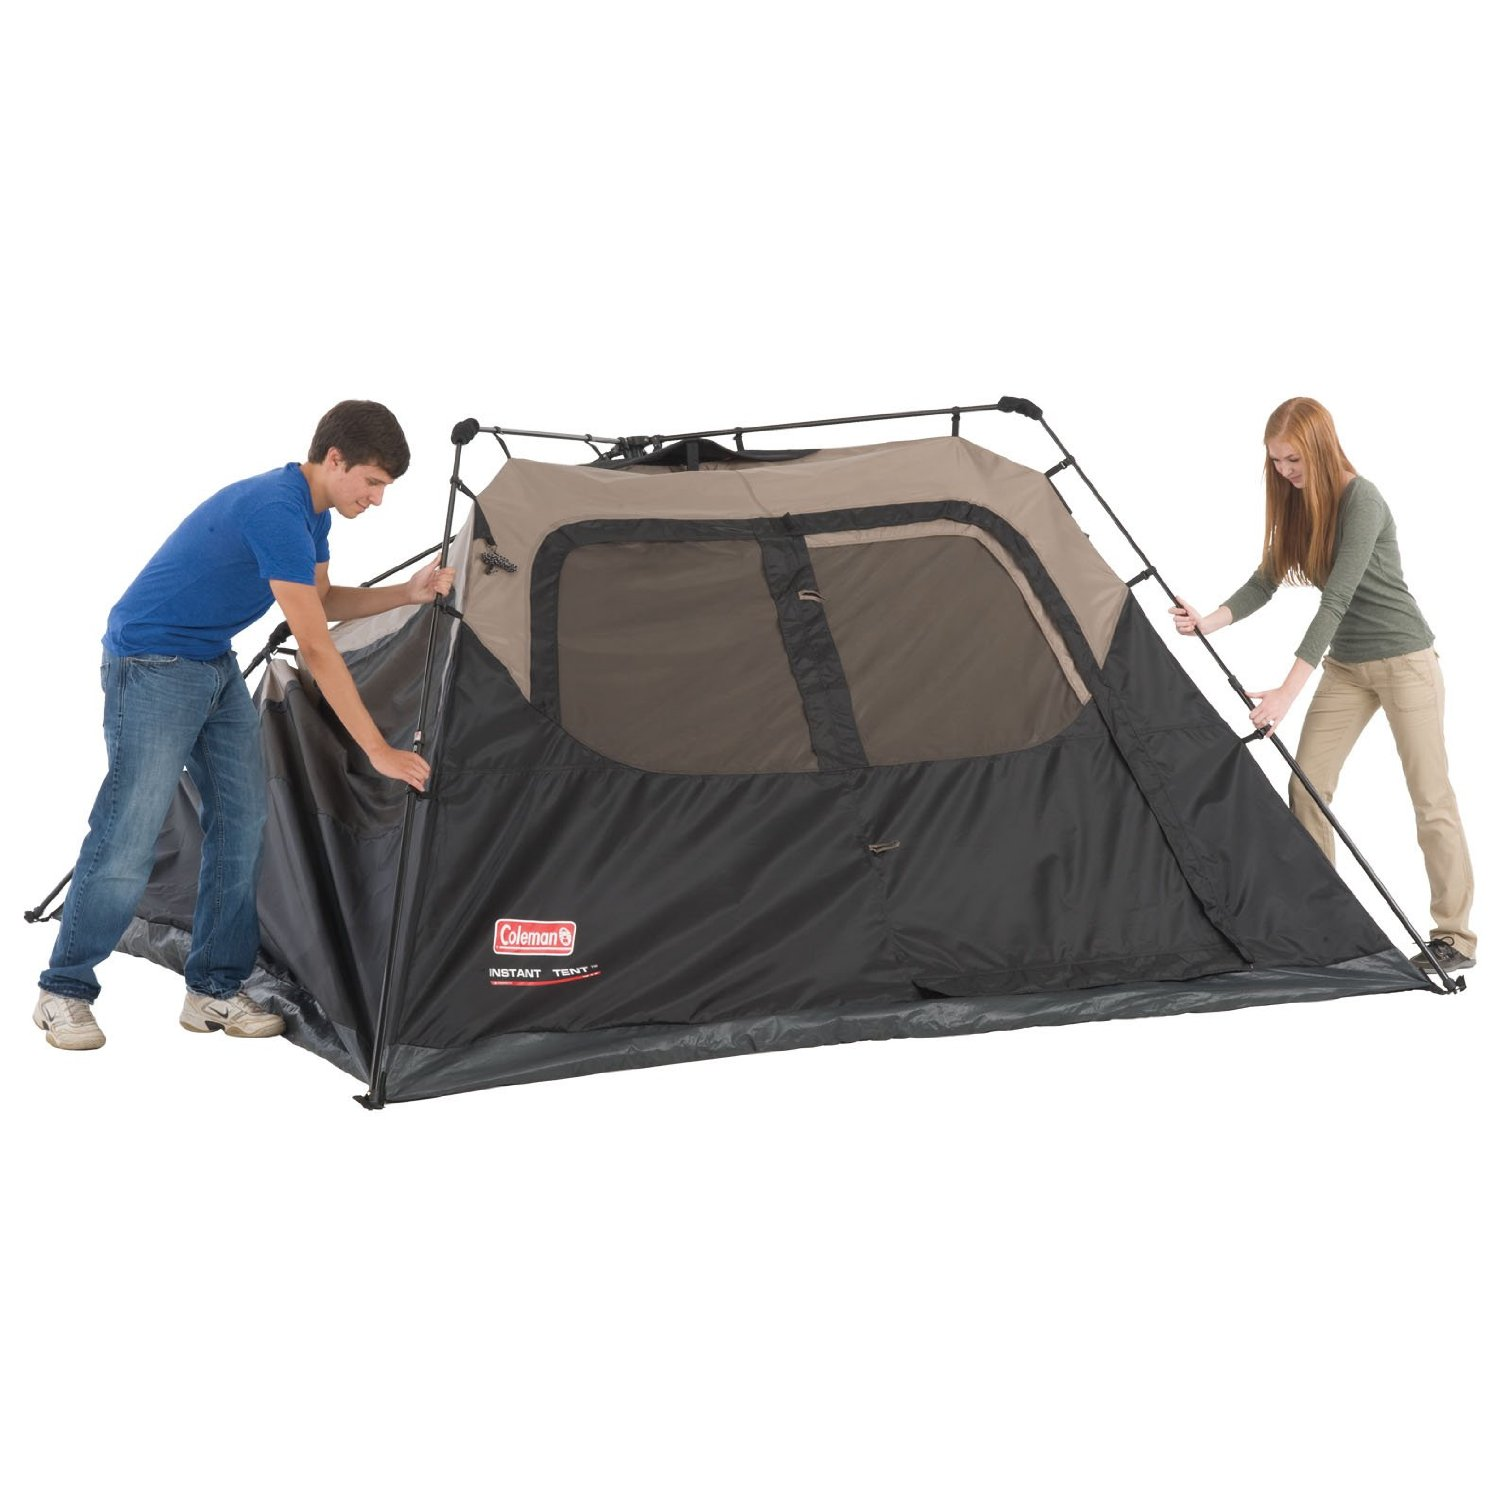 Coleman 6 Person Instant Tent : Coleman person instant tent stuff for camping all